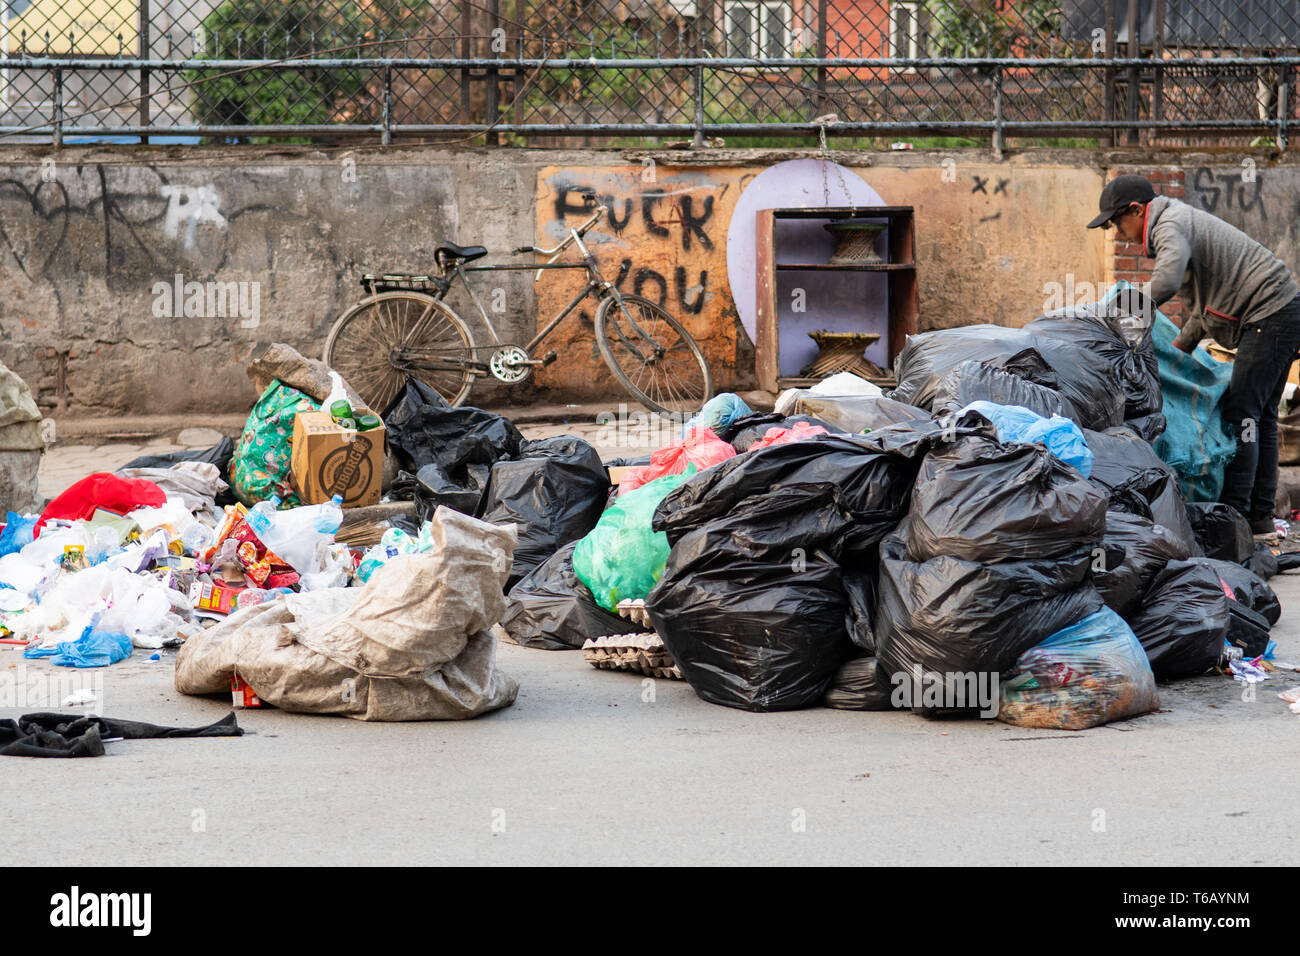 Kathmandu, Nepal - April 20th, 2019 - Garbage collector sorting through piles of trash early in the morning in the street. - Stock Image